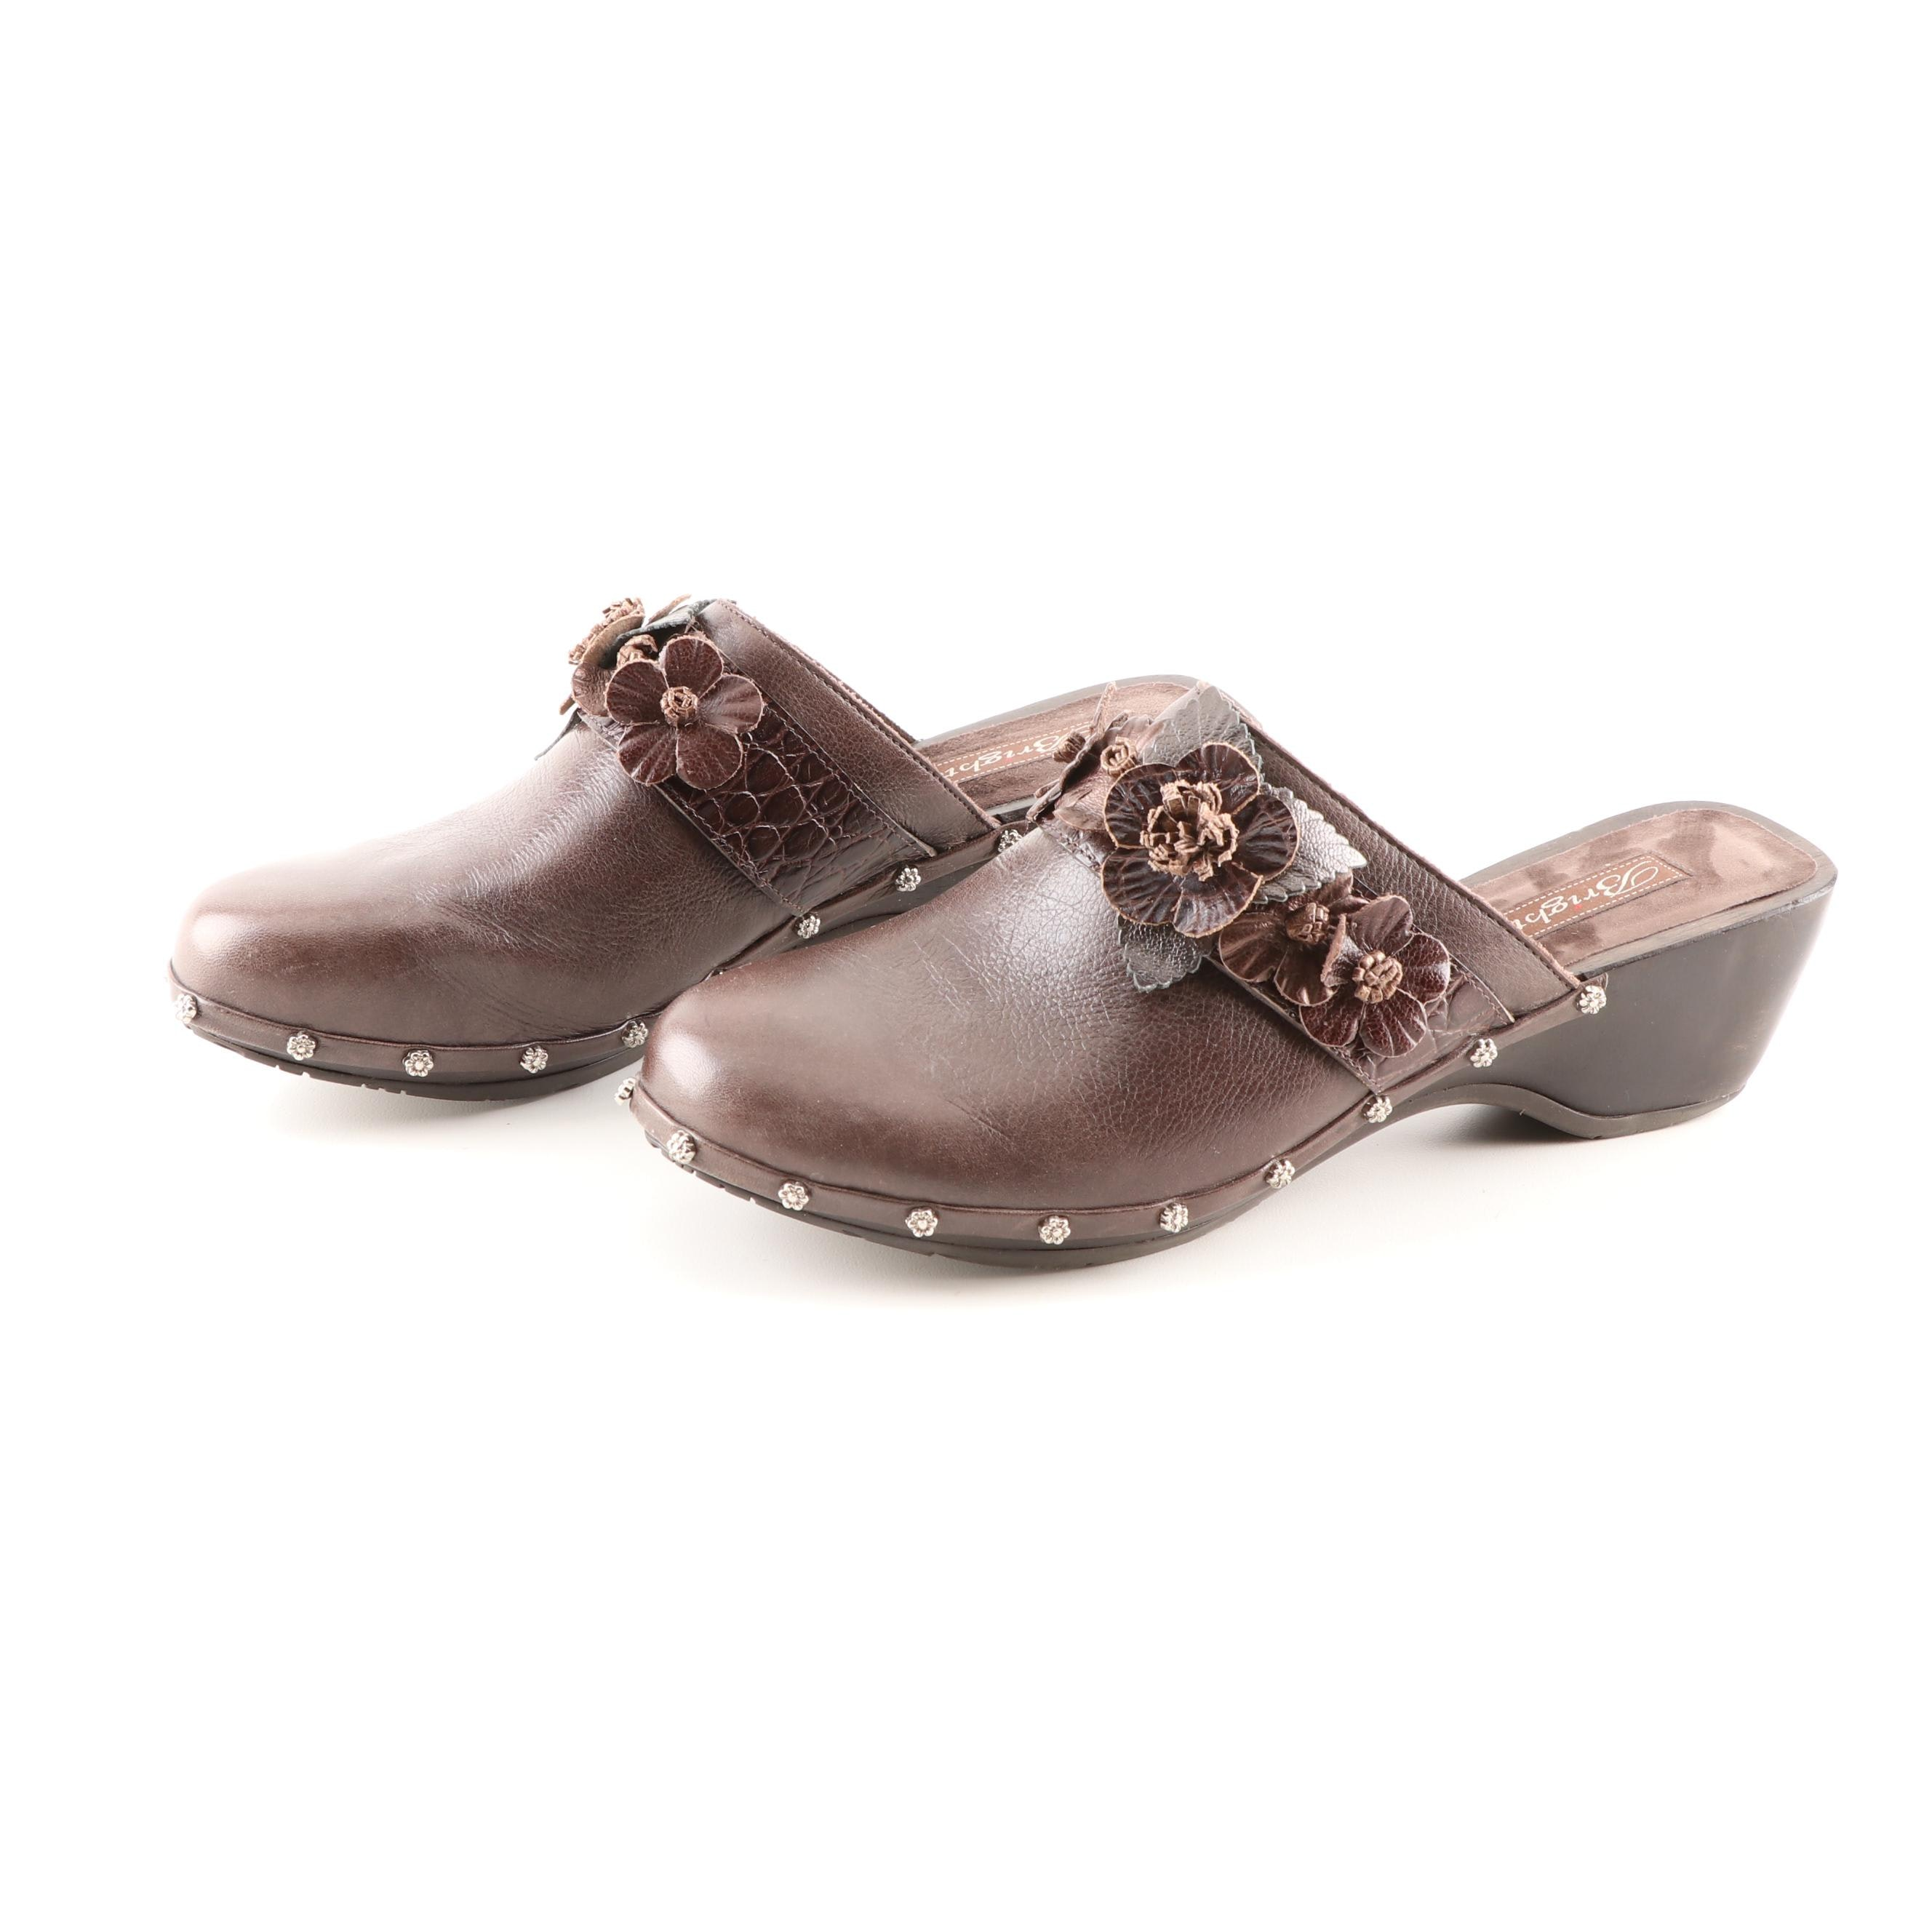 Women's Brighton Dutch Leather Clogs with Floral Embellishments